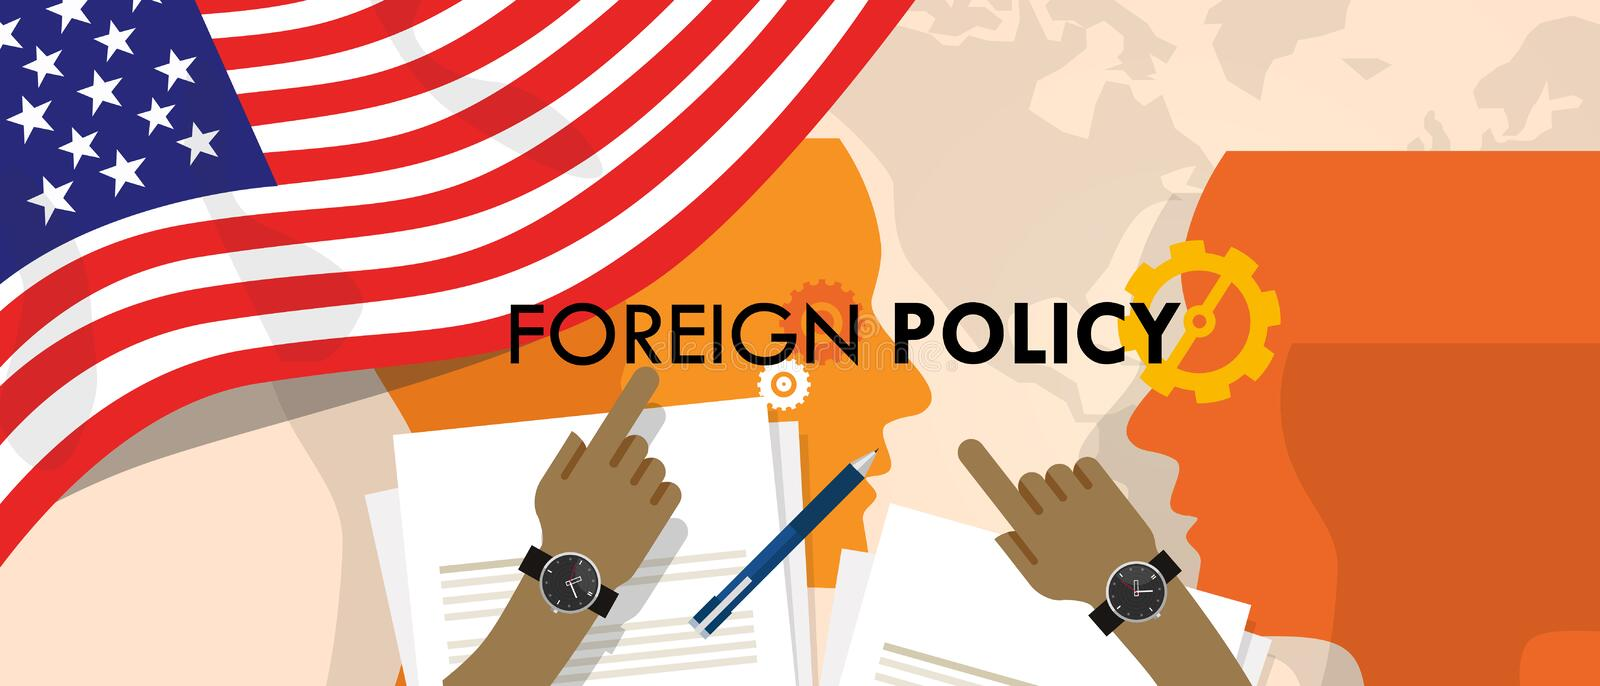 America US foreign policy diplomacy international relations between country in the world stock illustration